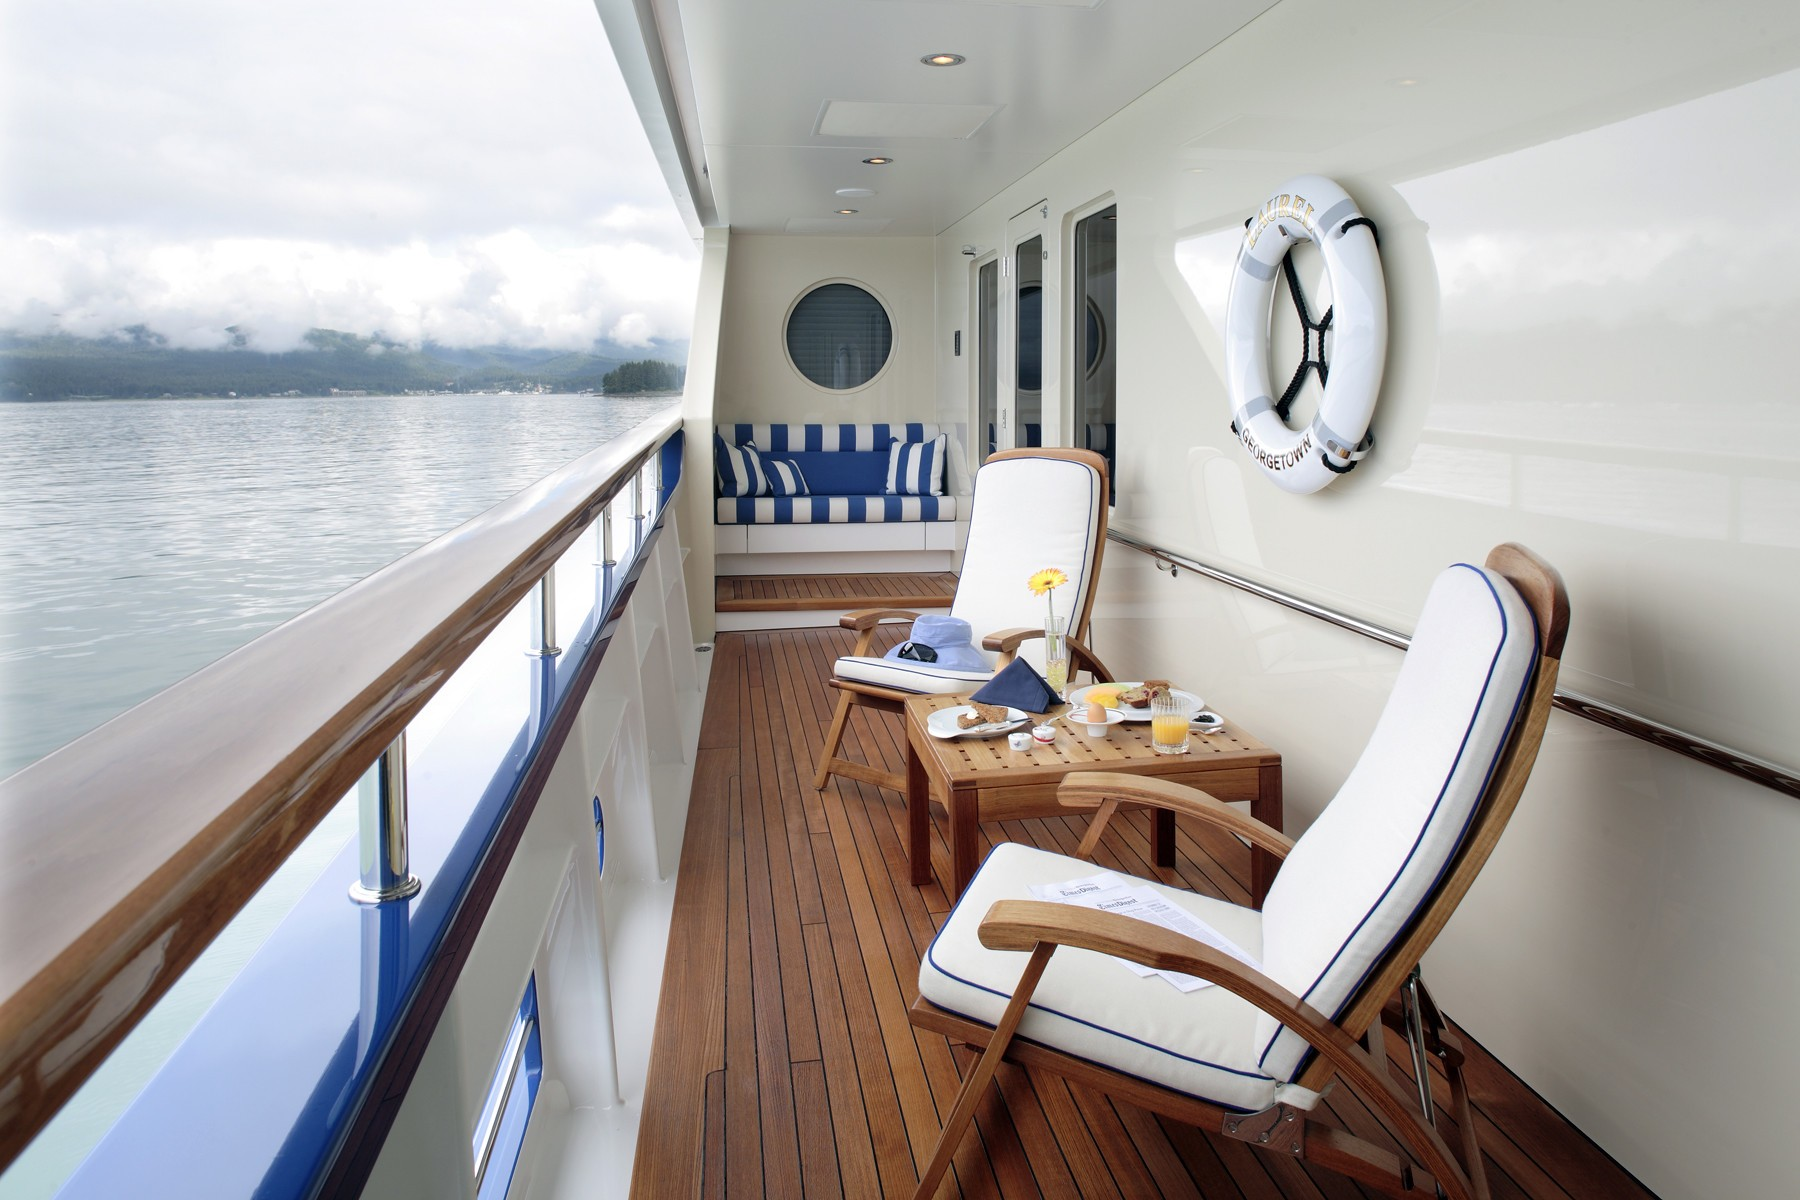 starboard side deck seating area